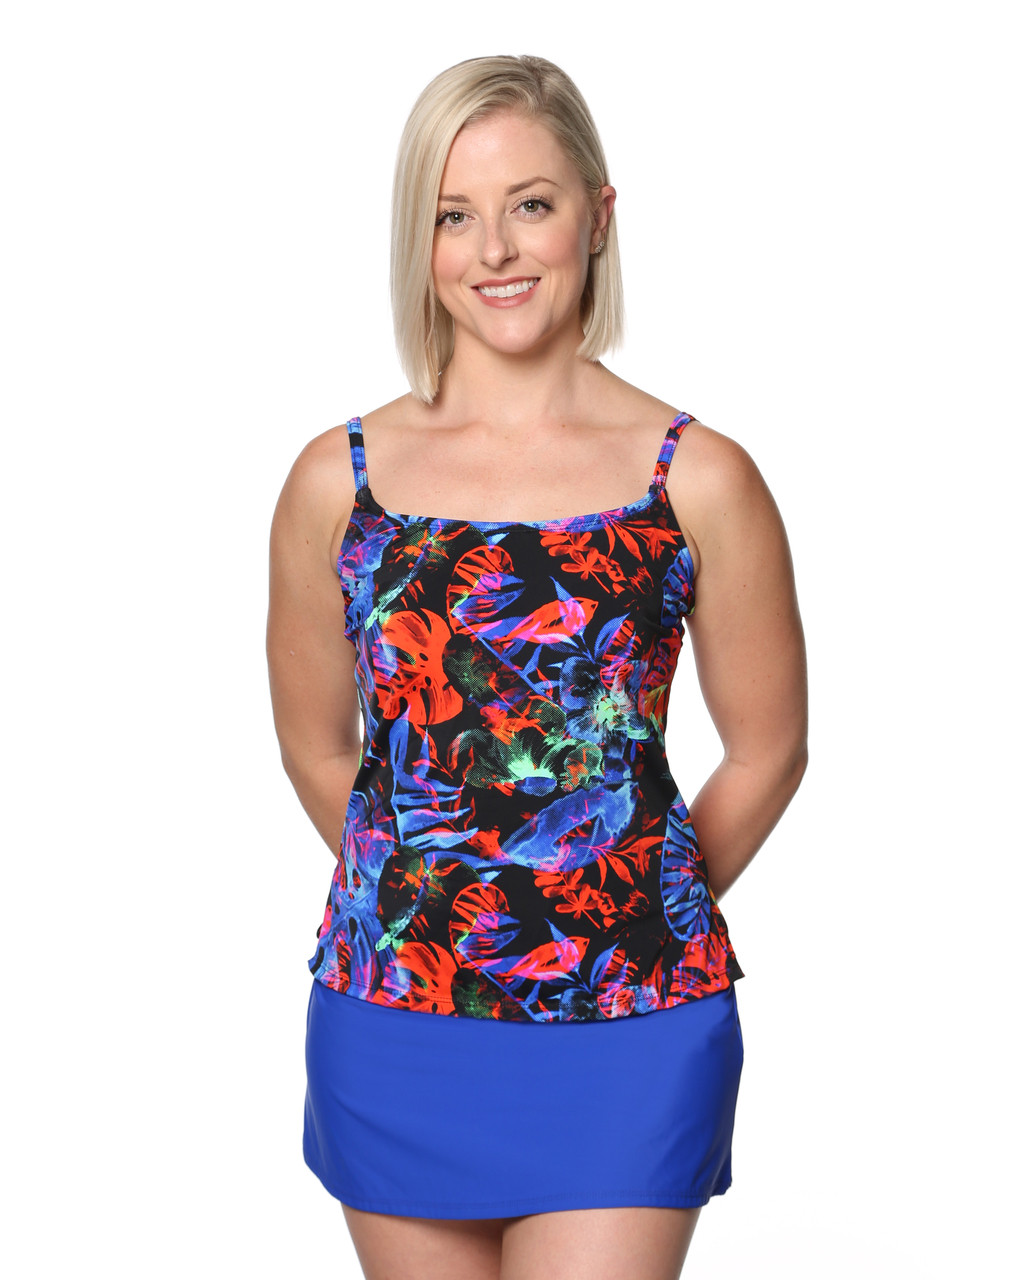 db2b98798cffc 2019 T.H.E. Collection 28-60 Mastectomy Swim Tank Top Only ...